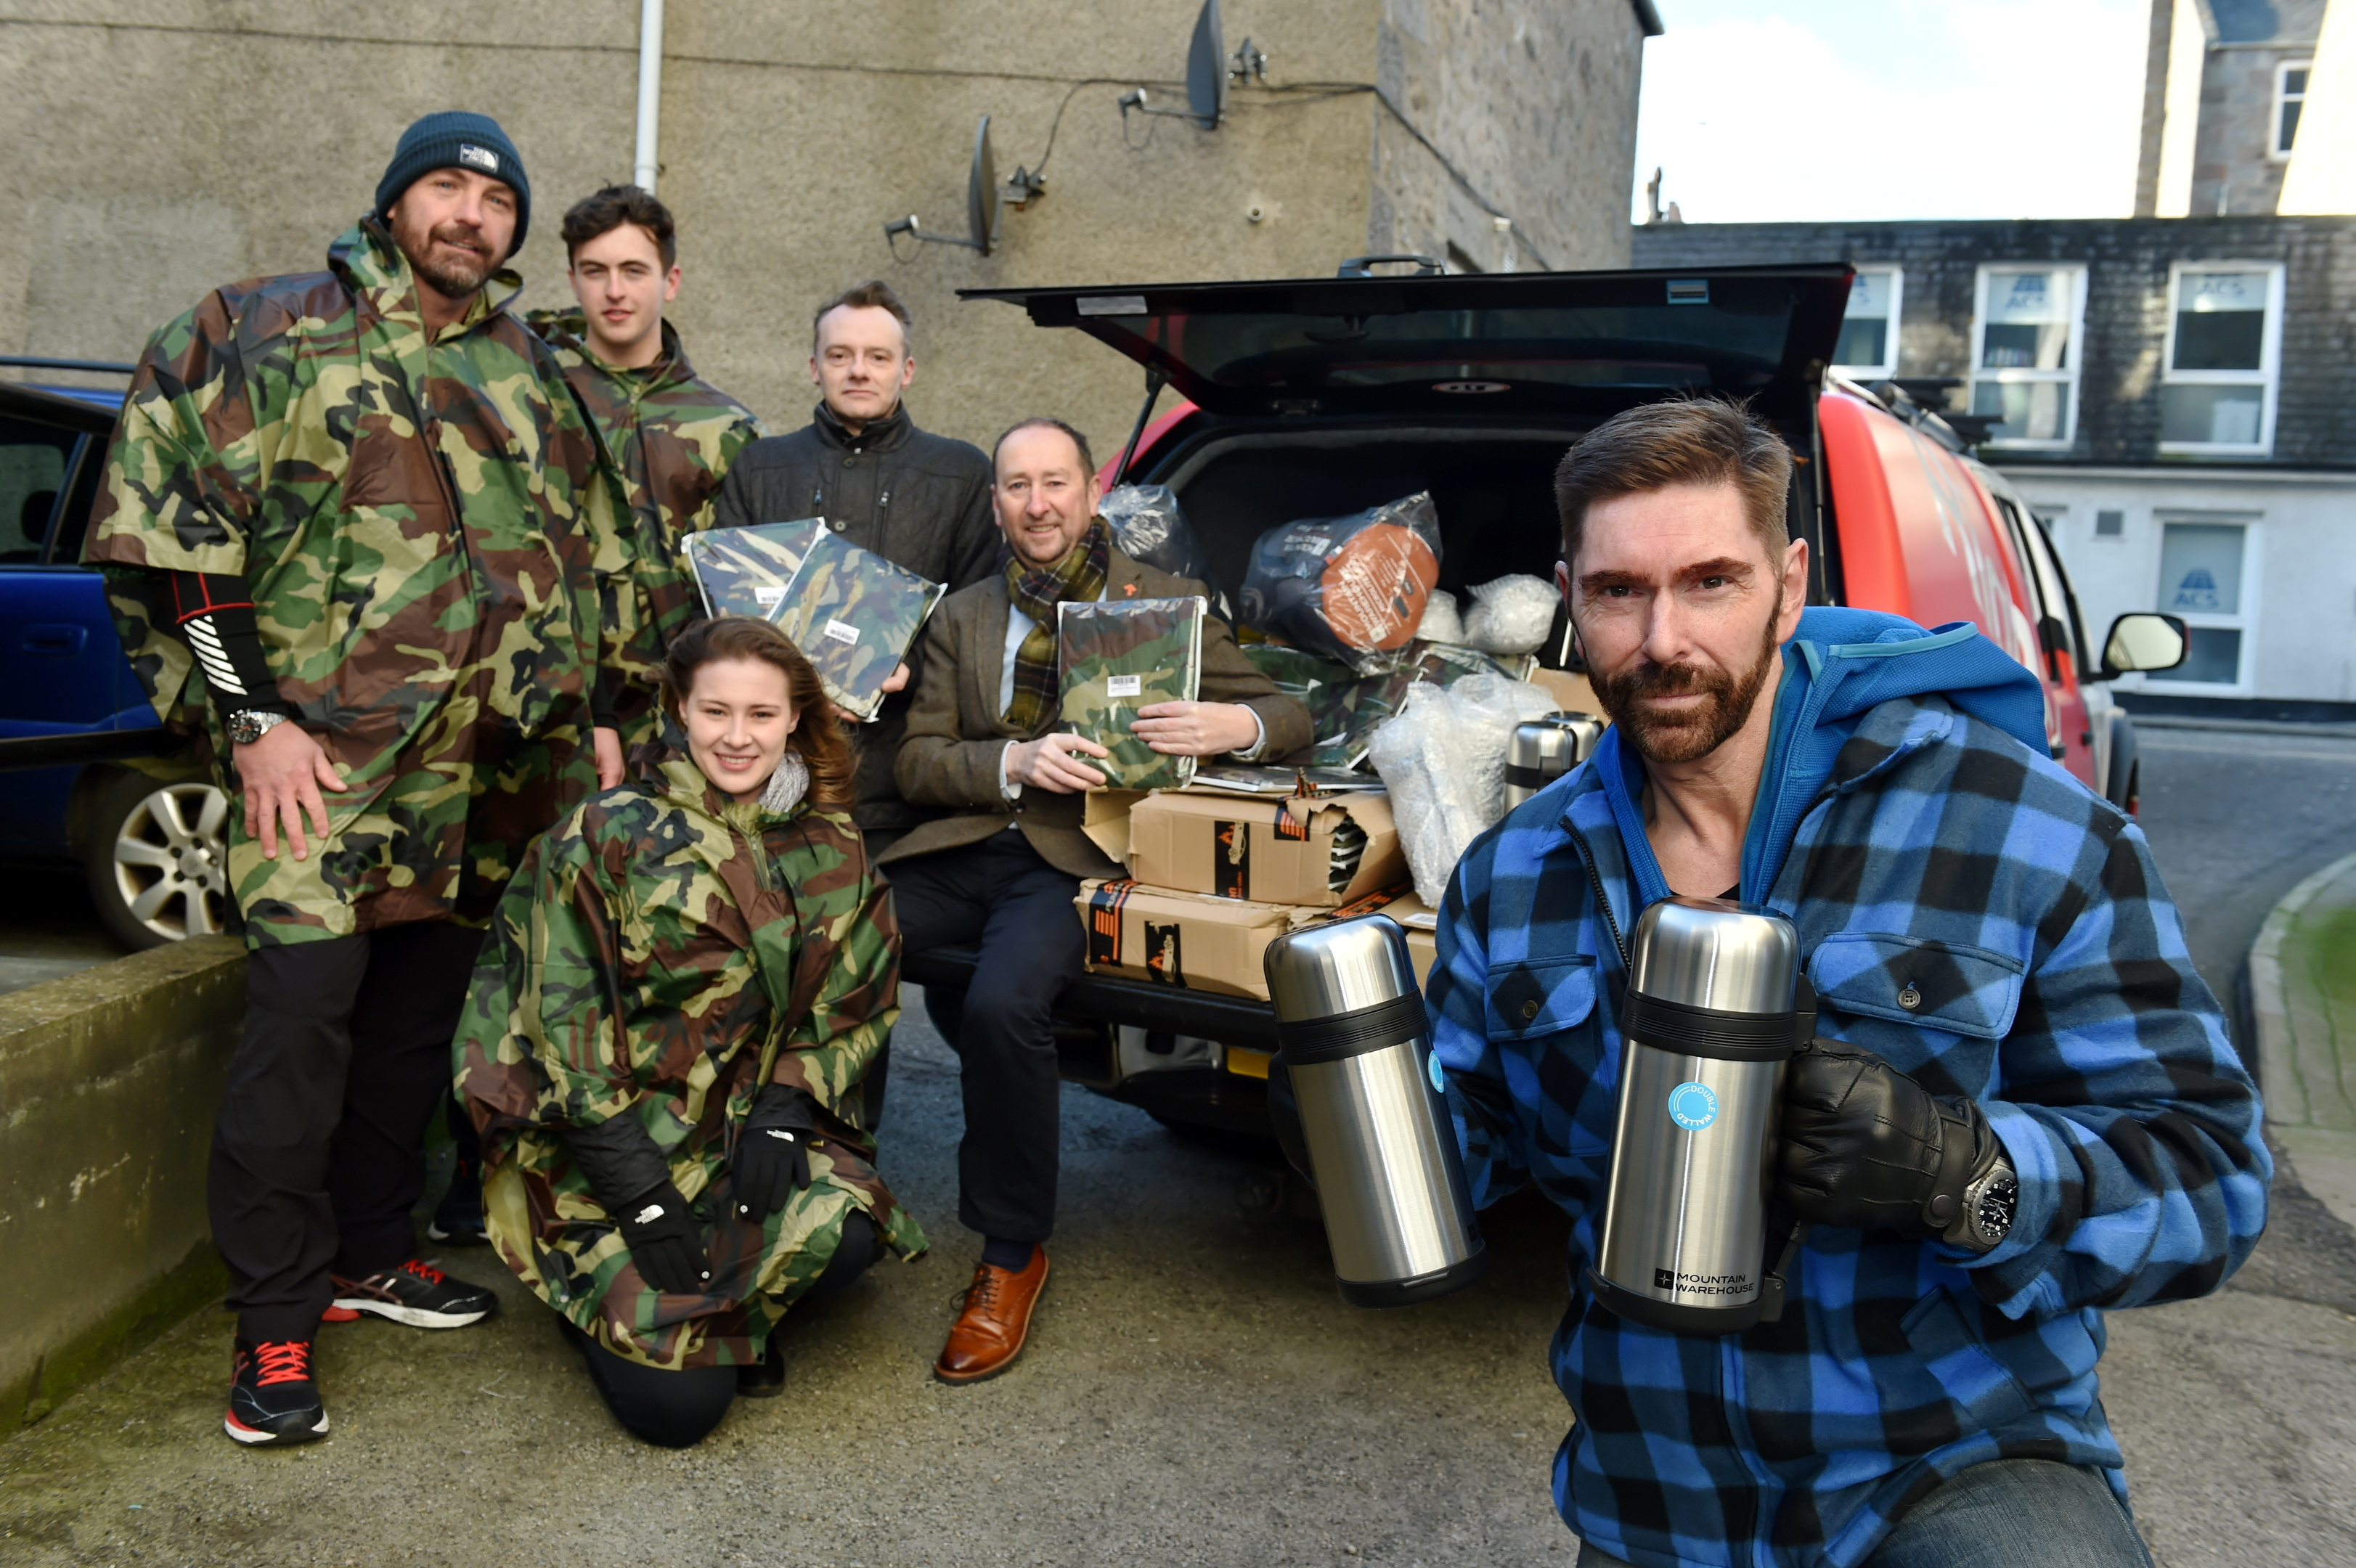 Ian Garden donated 100 blankets and thermal flasks to Social bite and the Cyrenians so they can distribute them to Aberdeen's homeless community. Picture of (L-R) Michael Byrne, Laim Byrne, Natasha Watt, Matthew Thomas, Mike Burns (Cyrenians) and Ian Garden.  Picture by KENNY ELRICK     07/12/2017